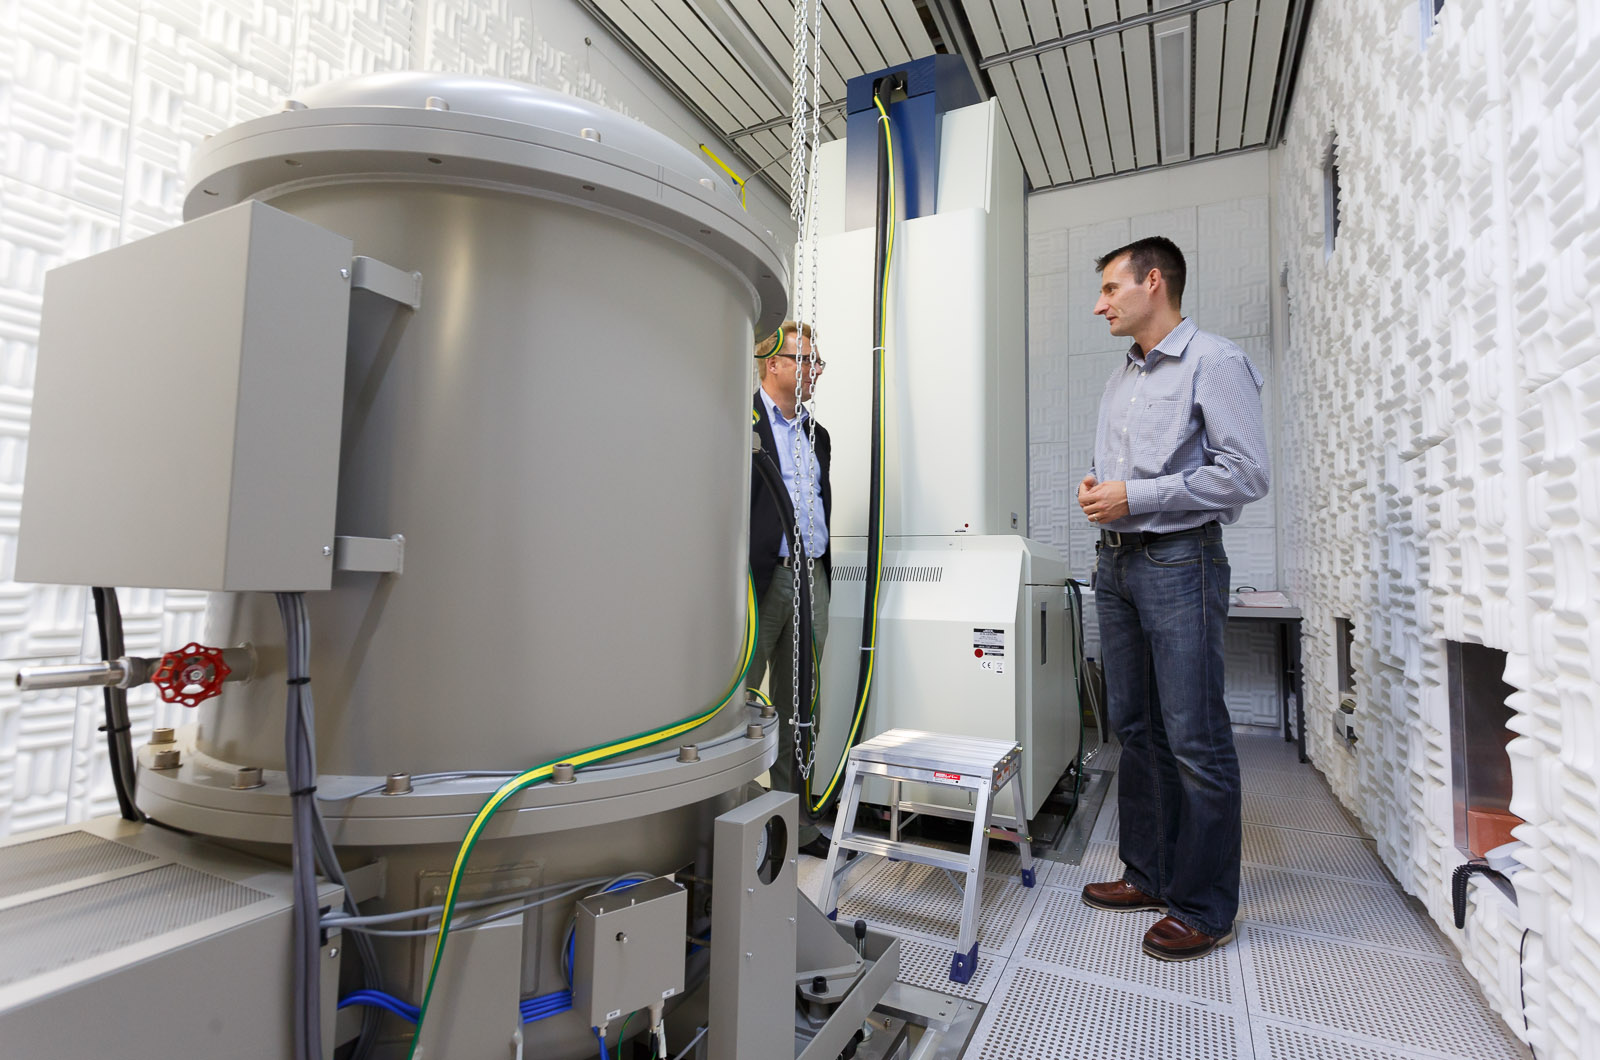 Rolf Erni, head of the Electron Microscopy Center at the Empa materials science research center, talks to a reporter next to a massive transmission electron microscope that can observe structures as detailed as individual atoms and chemical bond types.